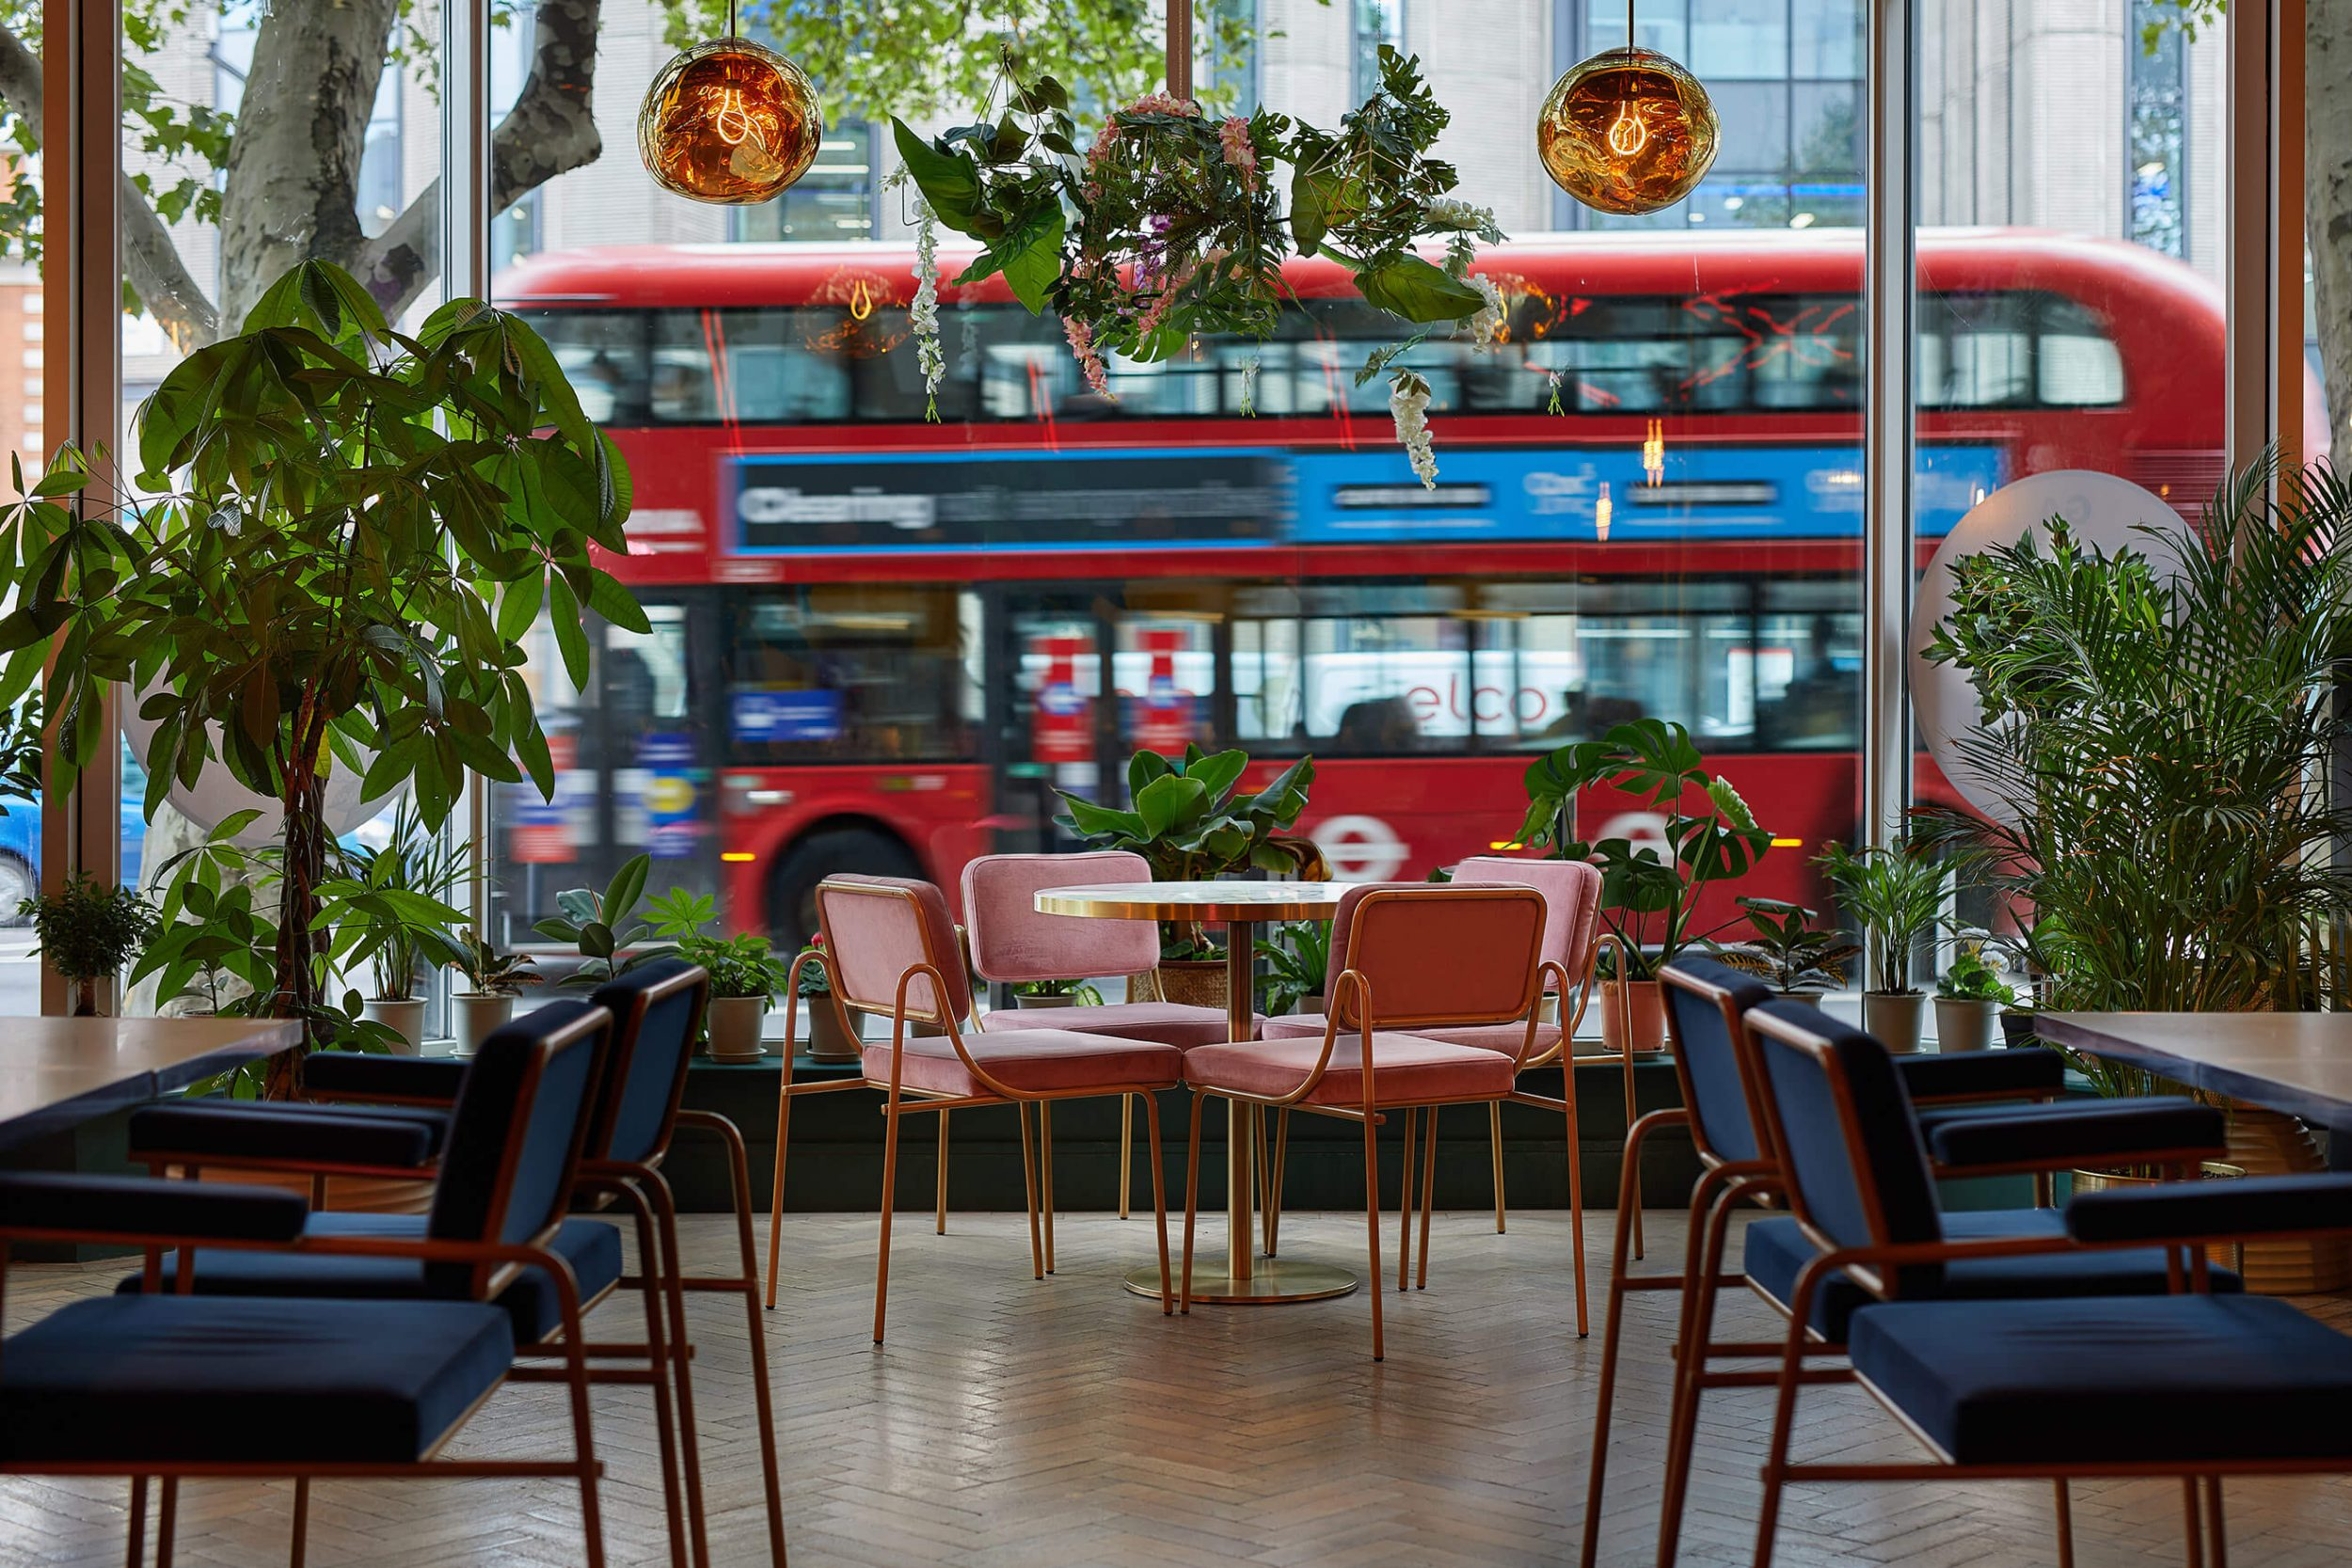 Large restaurant window view of red London bus